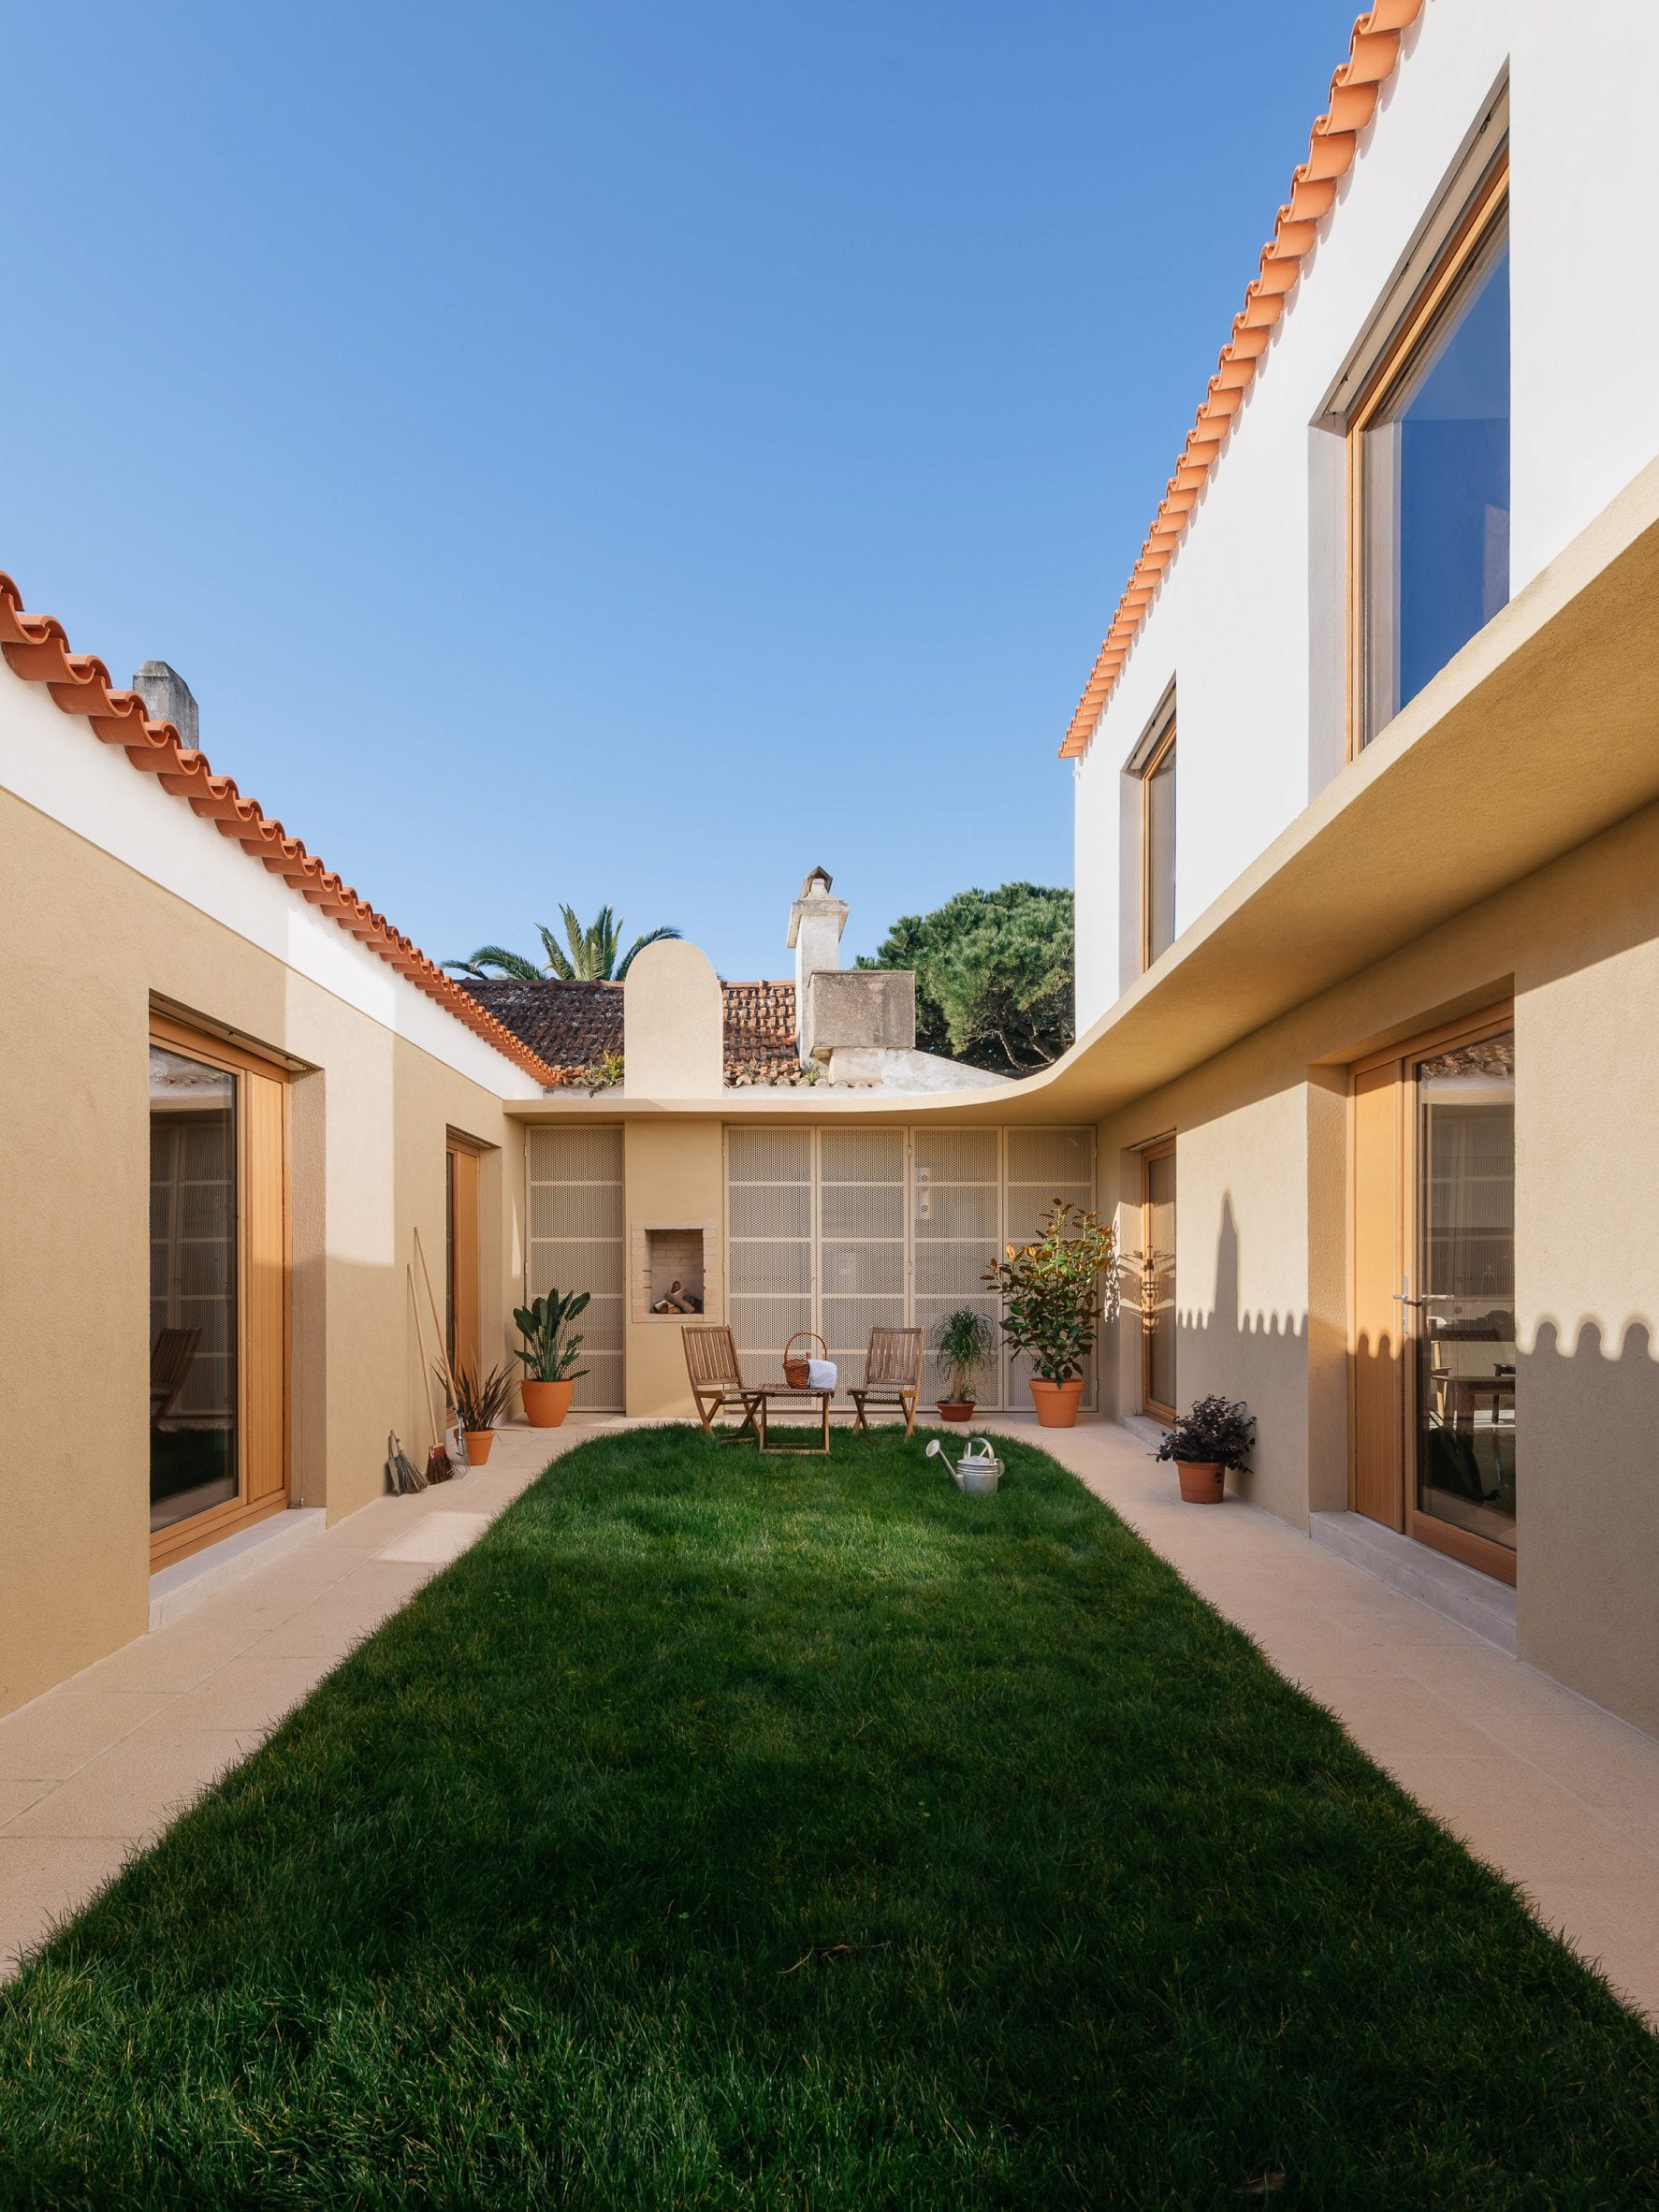 Courtyard in Puppeteers House by REDO Architects